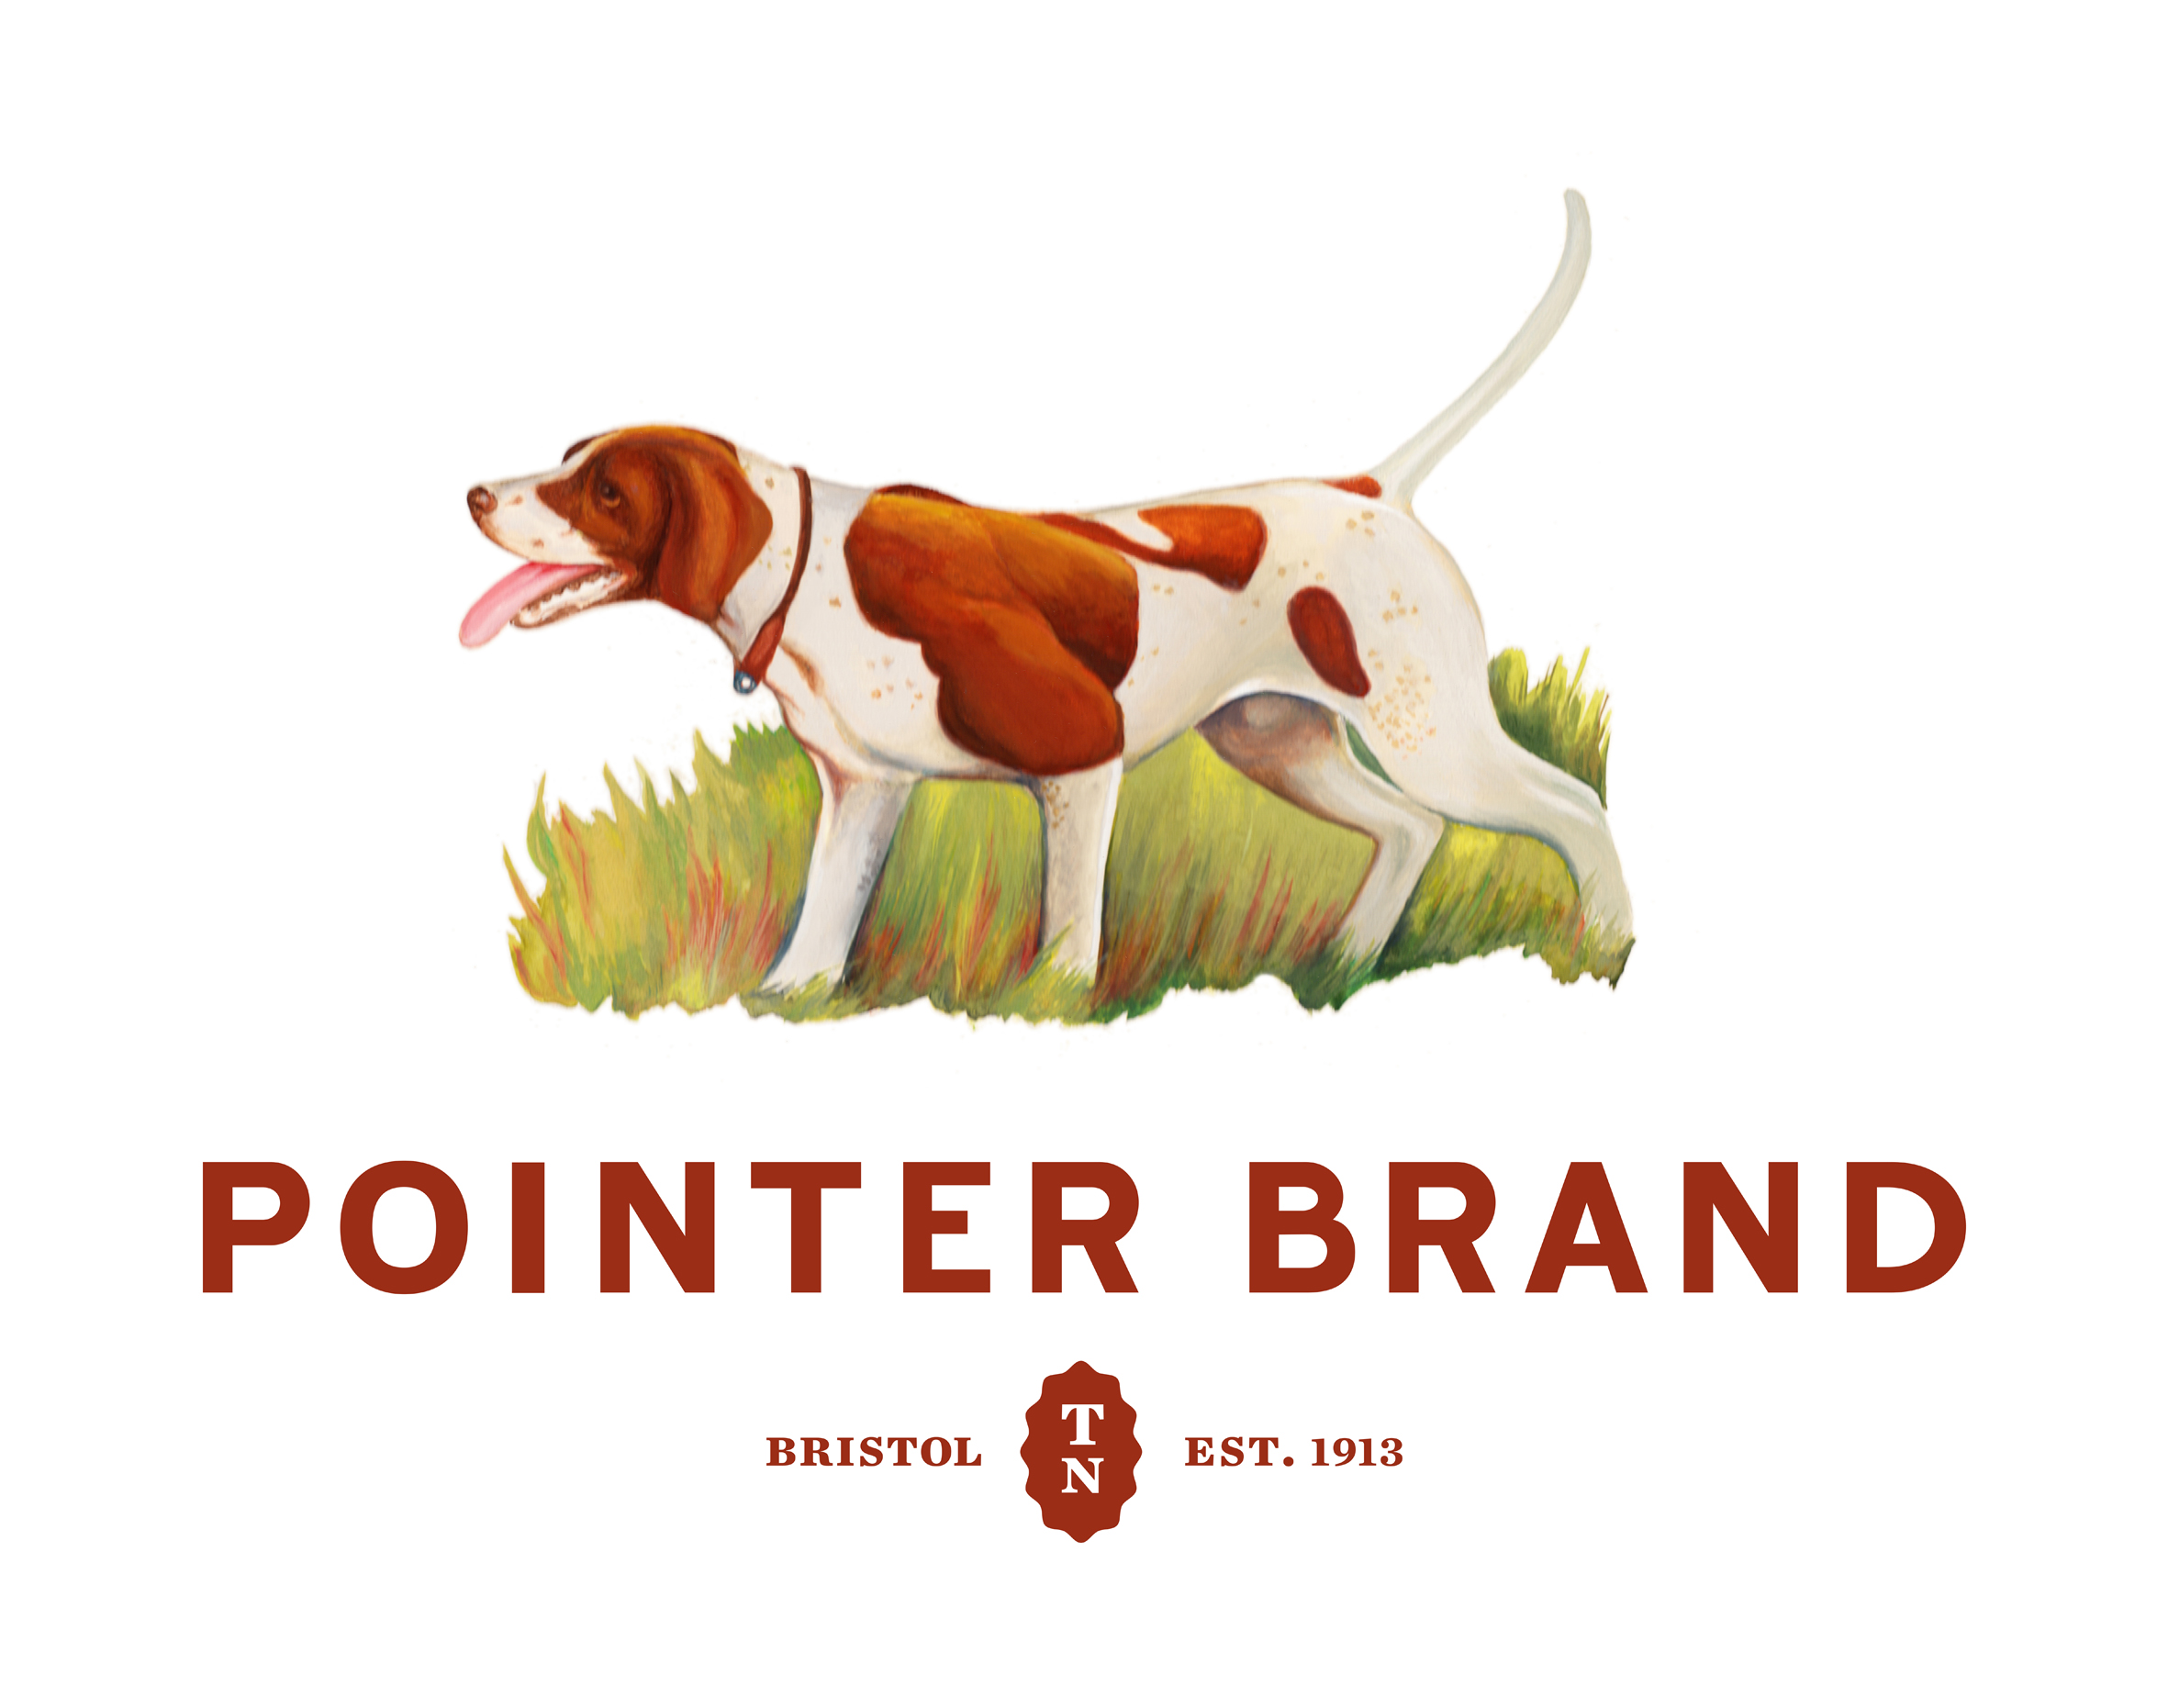 Pointer Brand - by L.C. King, Tennesee